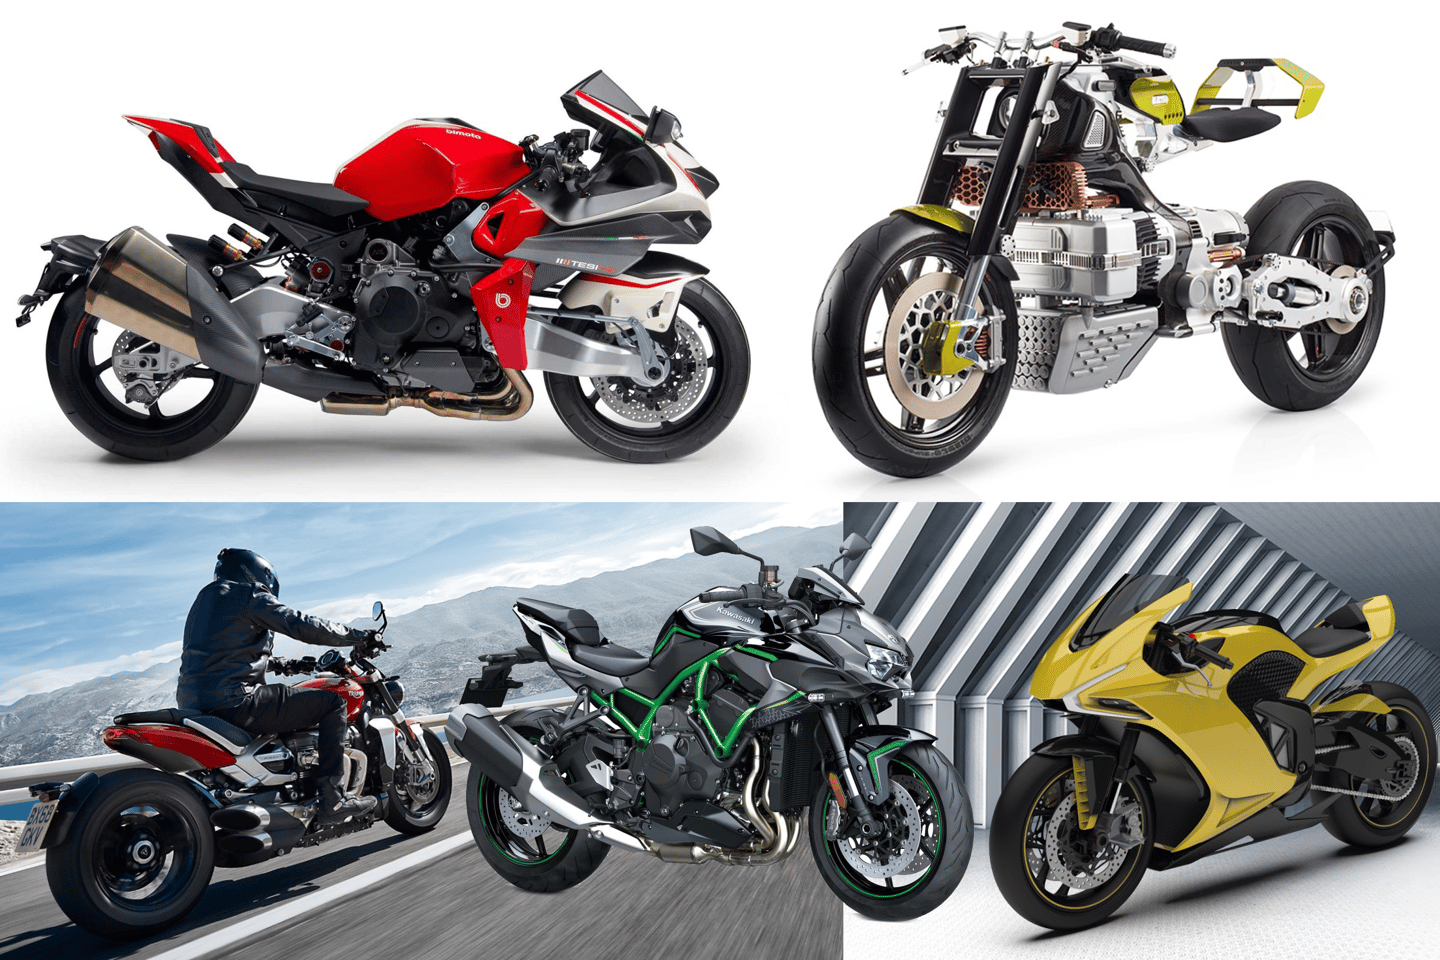 The motorcycle developments that caught our eye in 2019